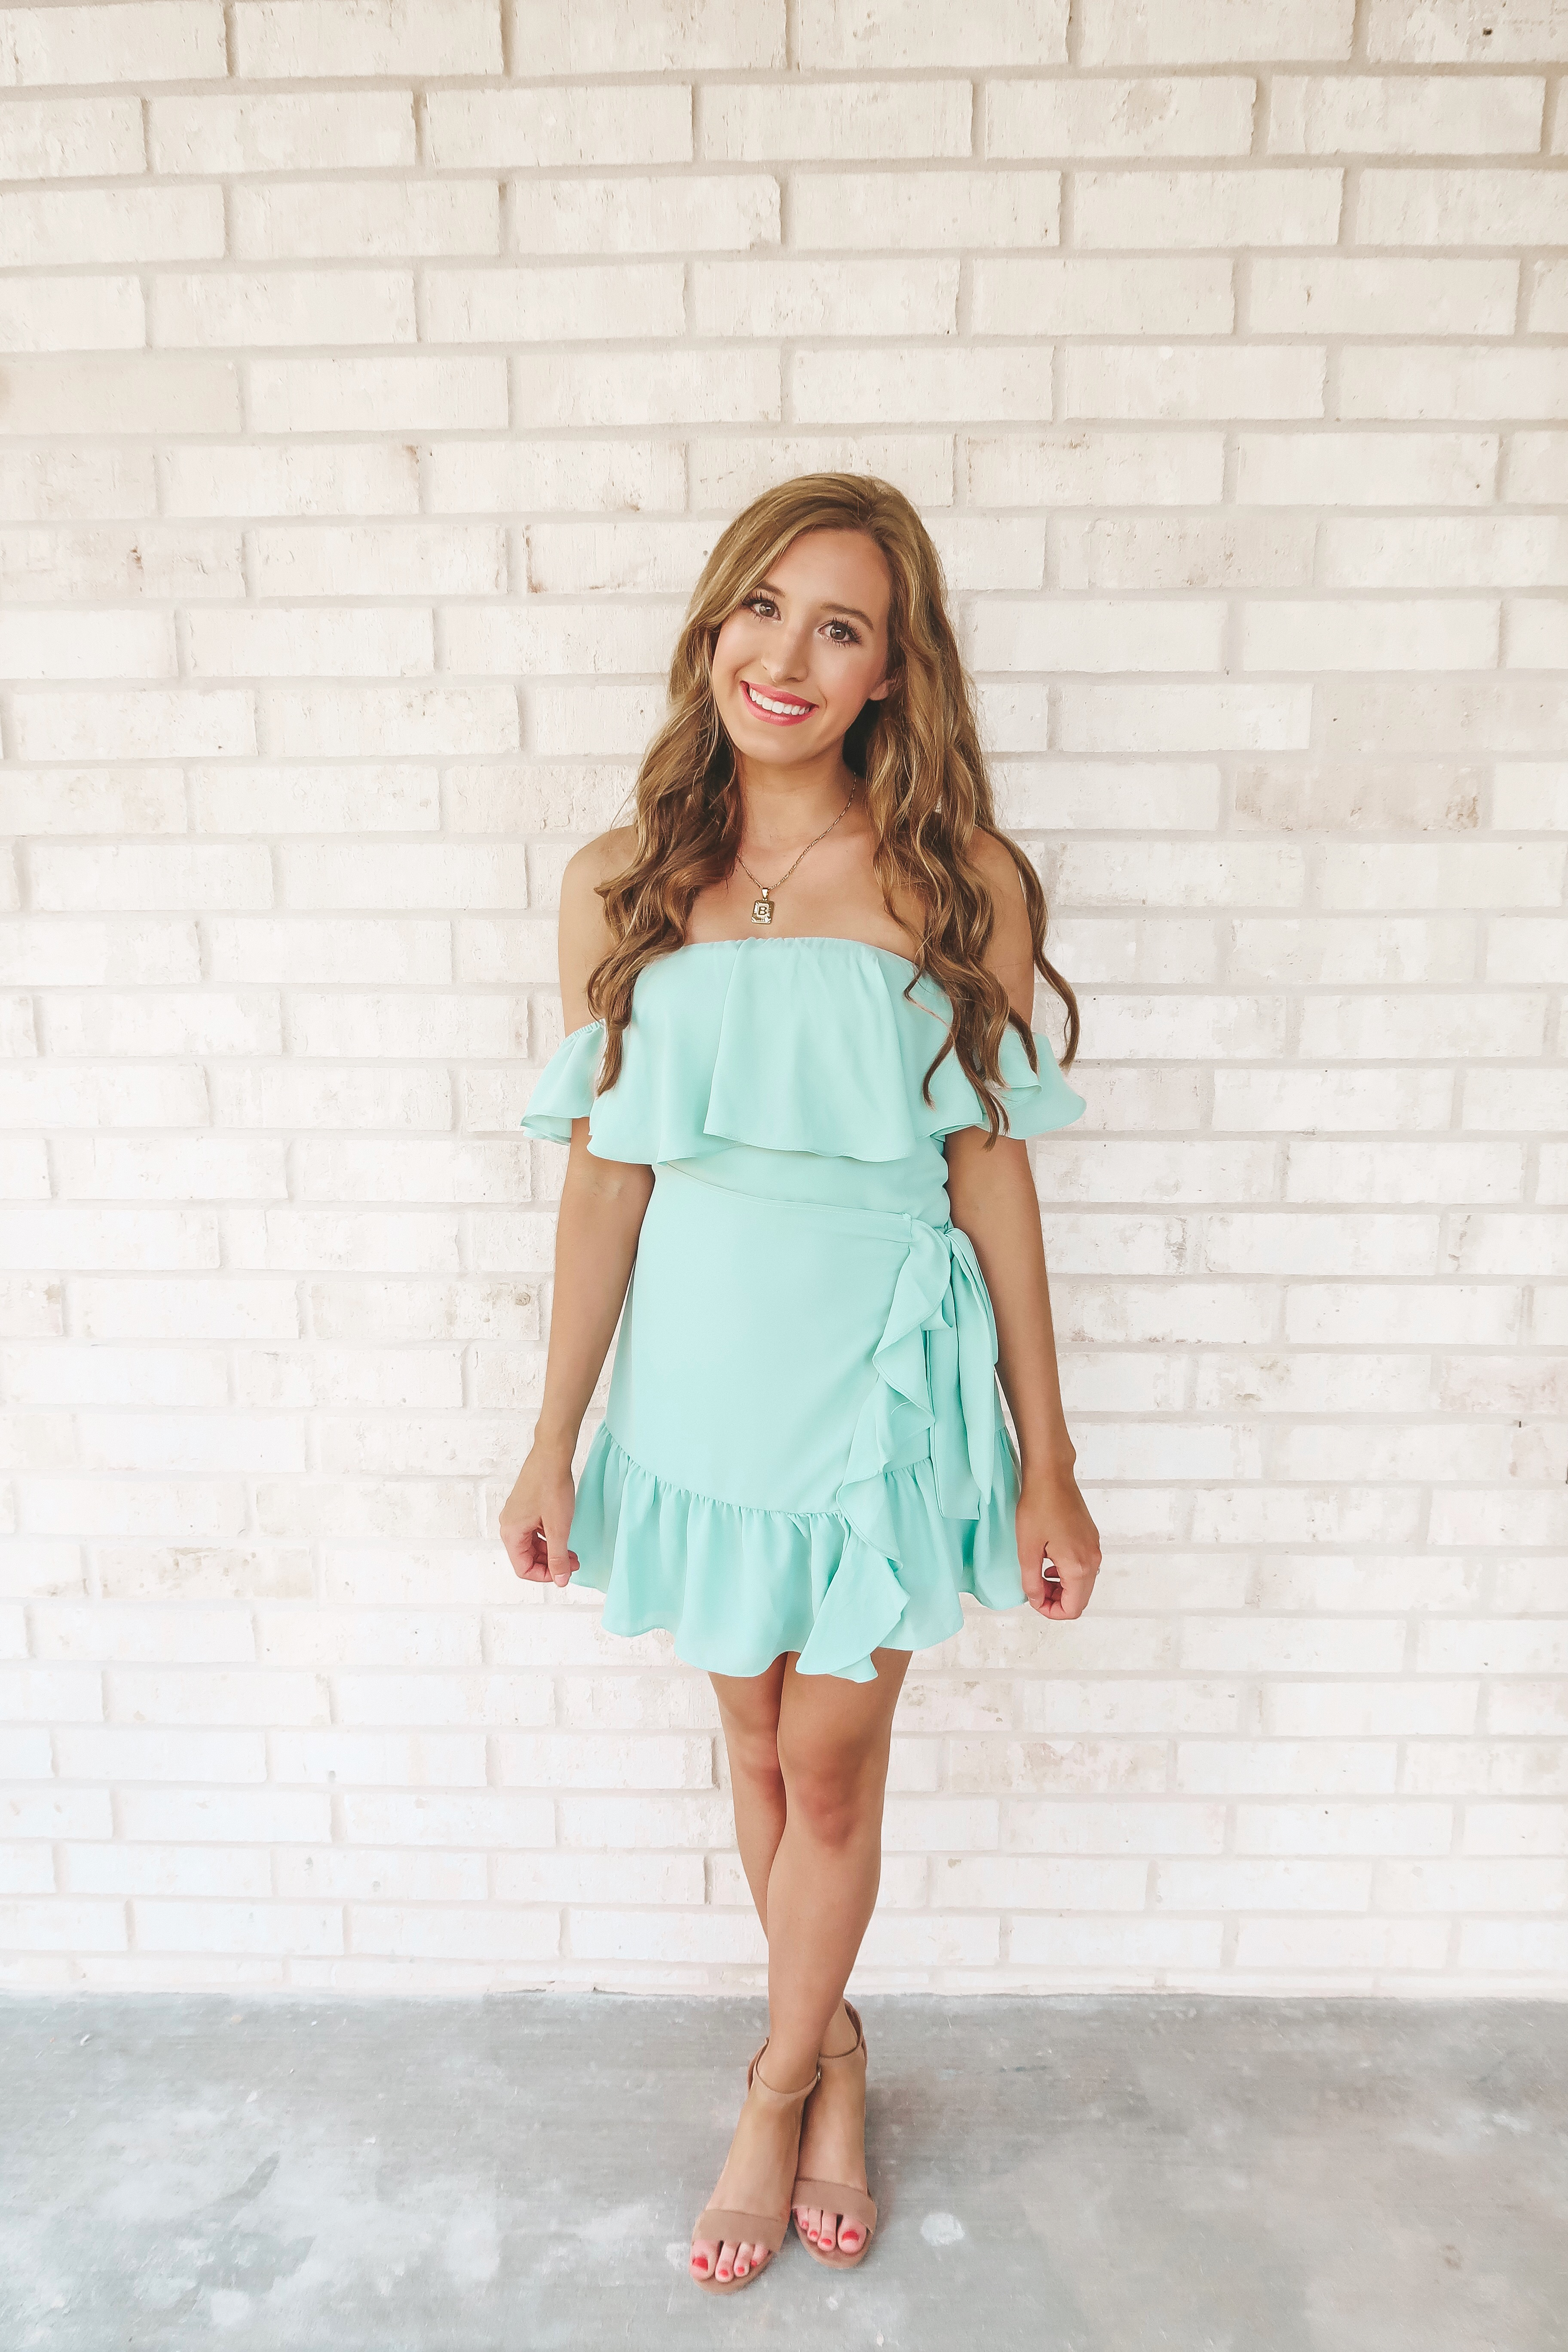 IMG 3804 Facetune 07 04 2019 19 16 24 - Easter Dresses